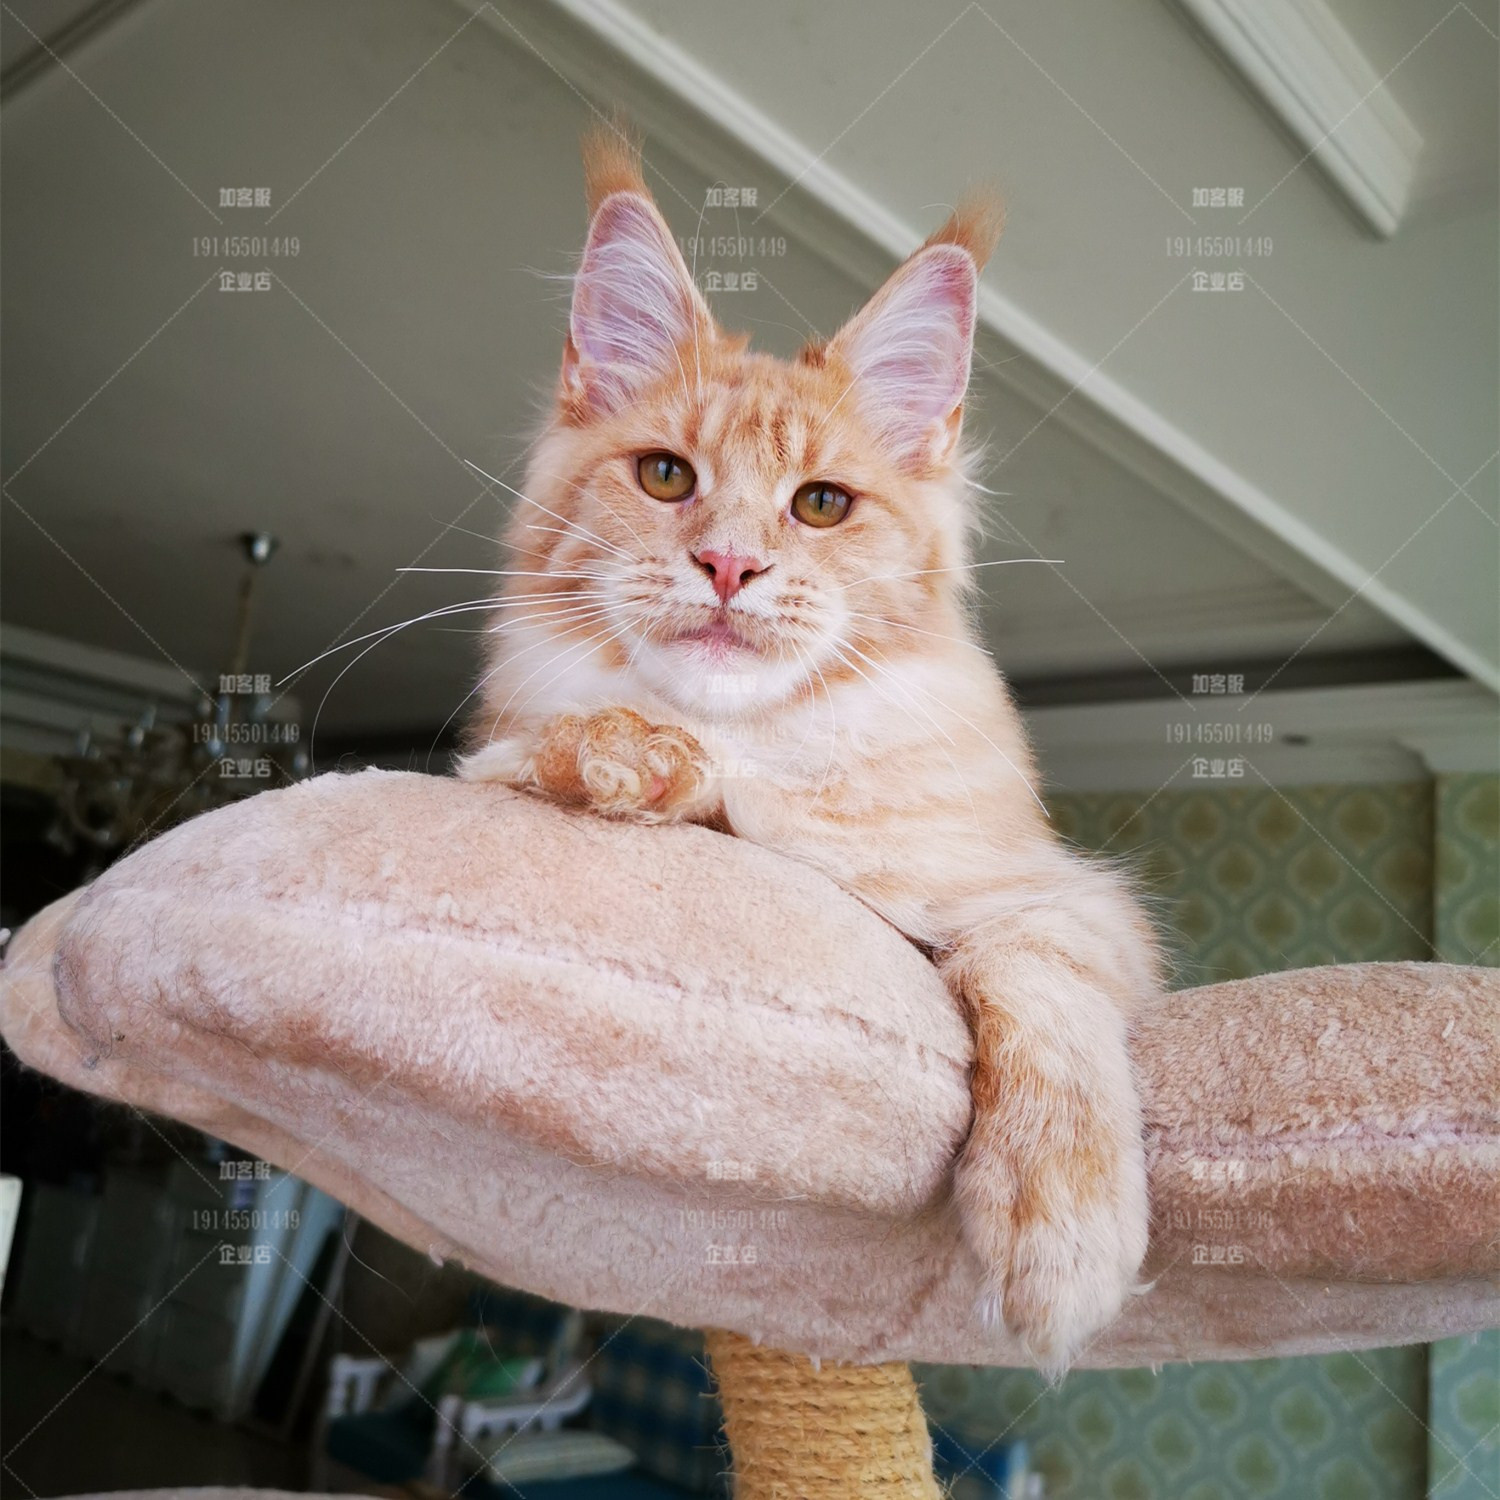 Purebred red tiger spotted Maine cat live kitten super giant domestic pet cat lion coon